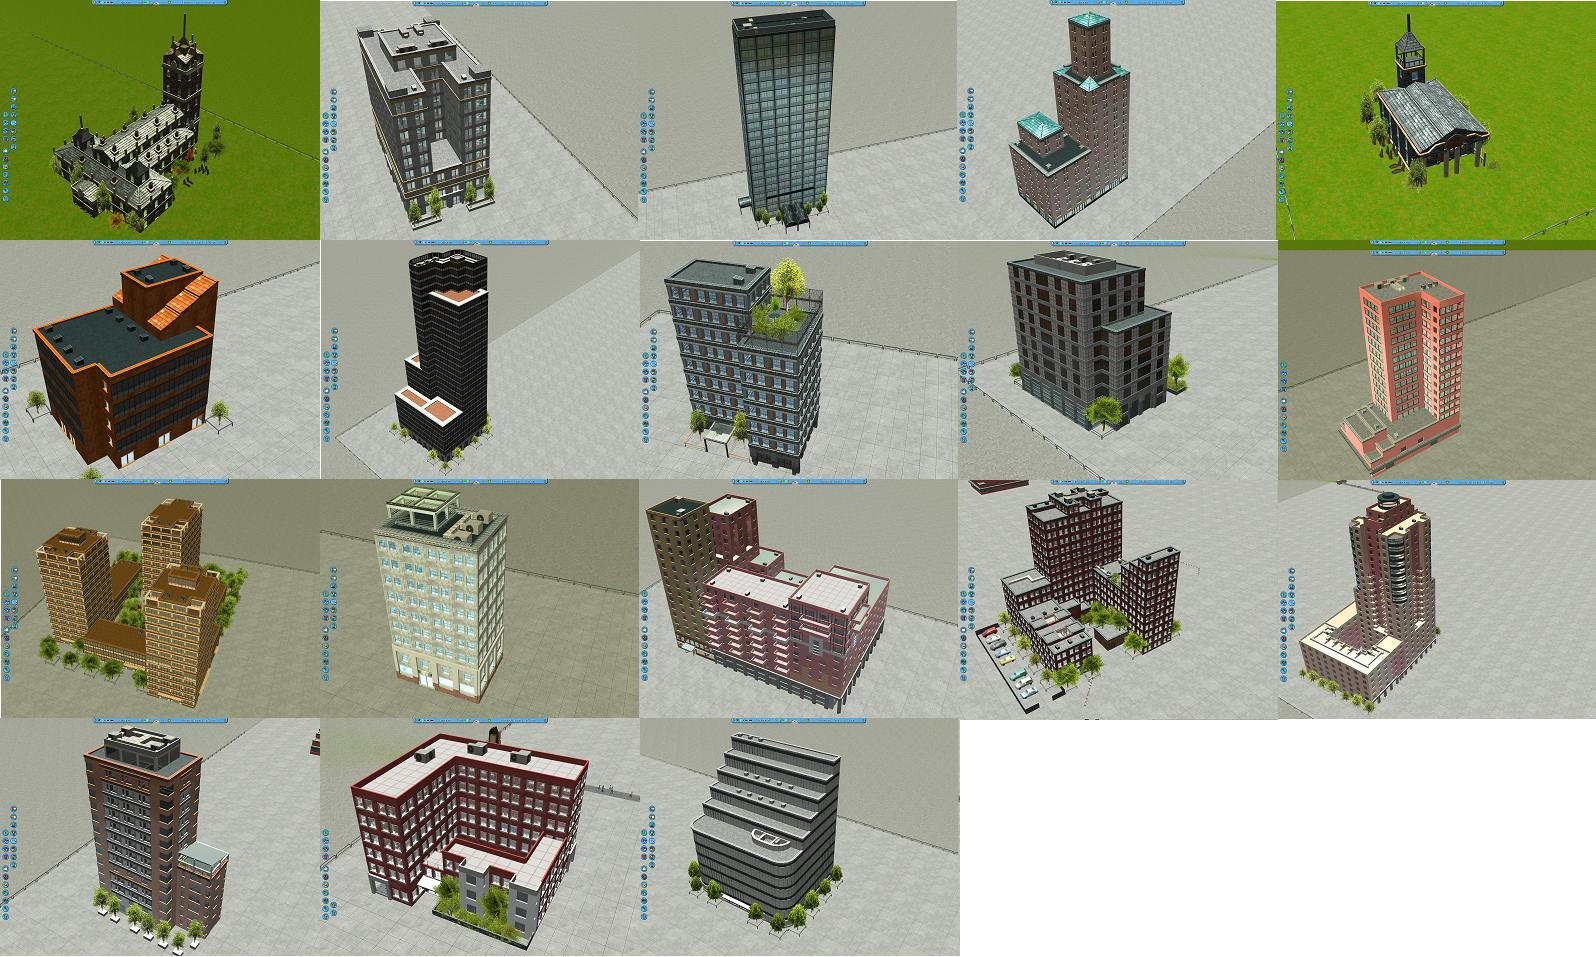 Reloaded] 18 Buildings Pack - Downloads - RCTgo